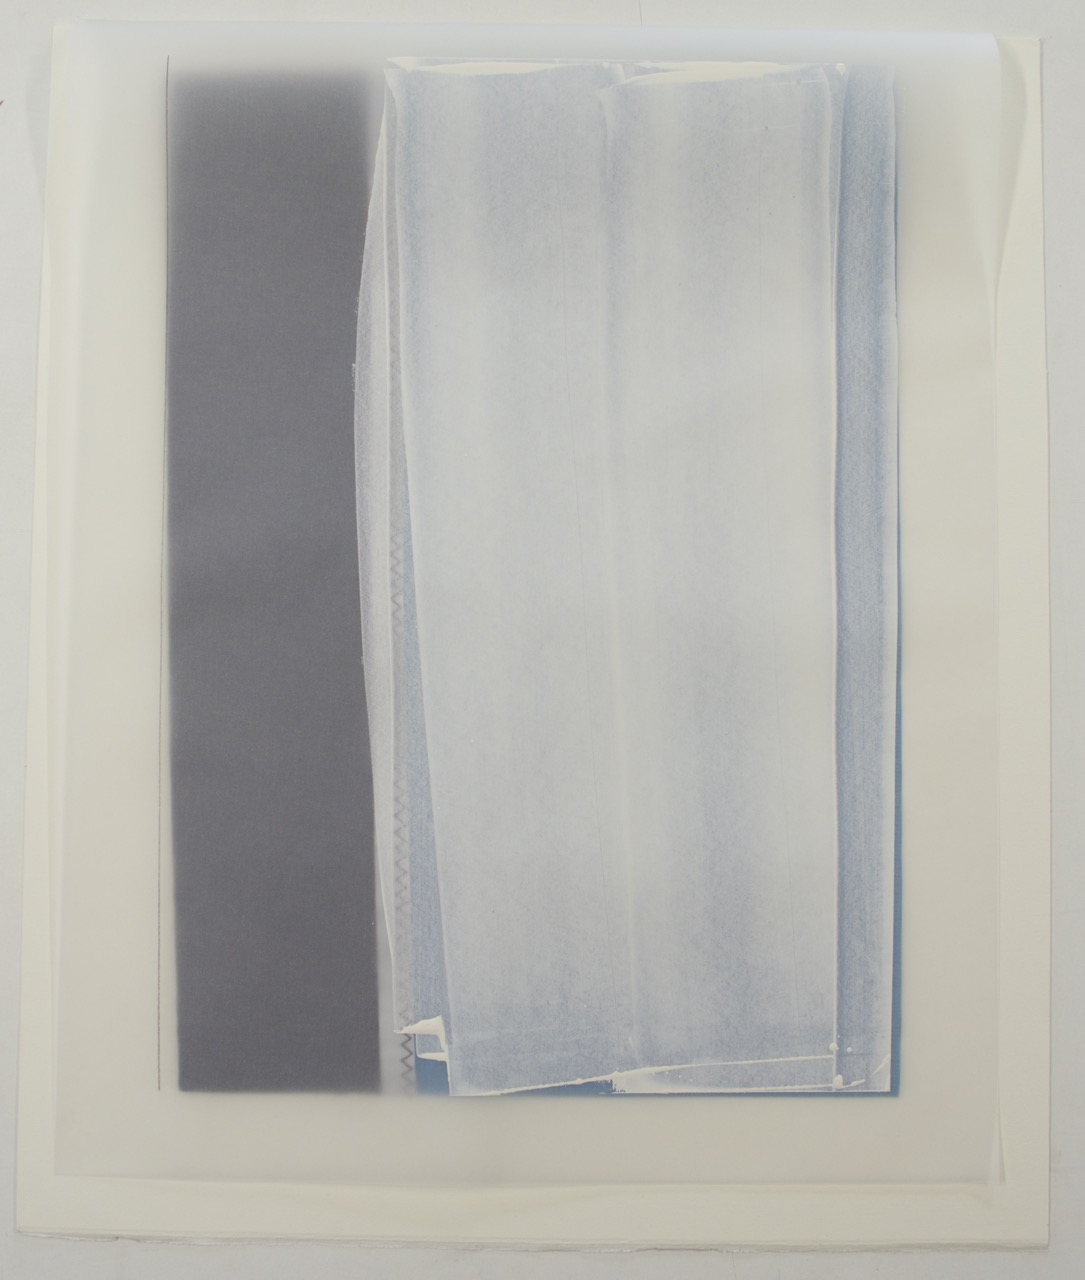 work on paper, 2013